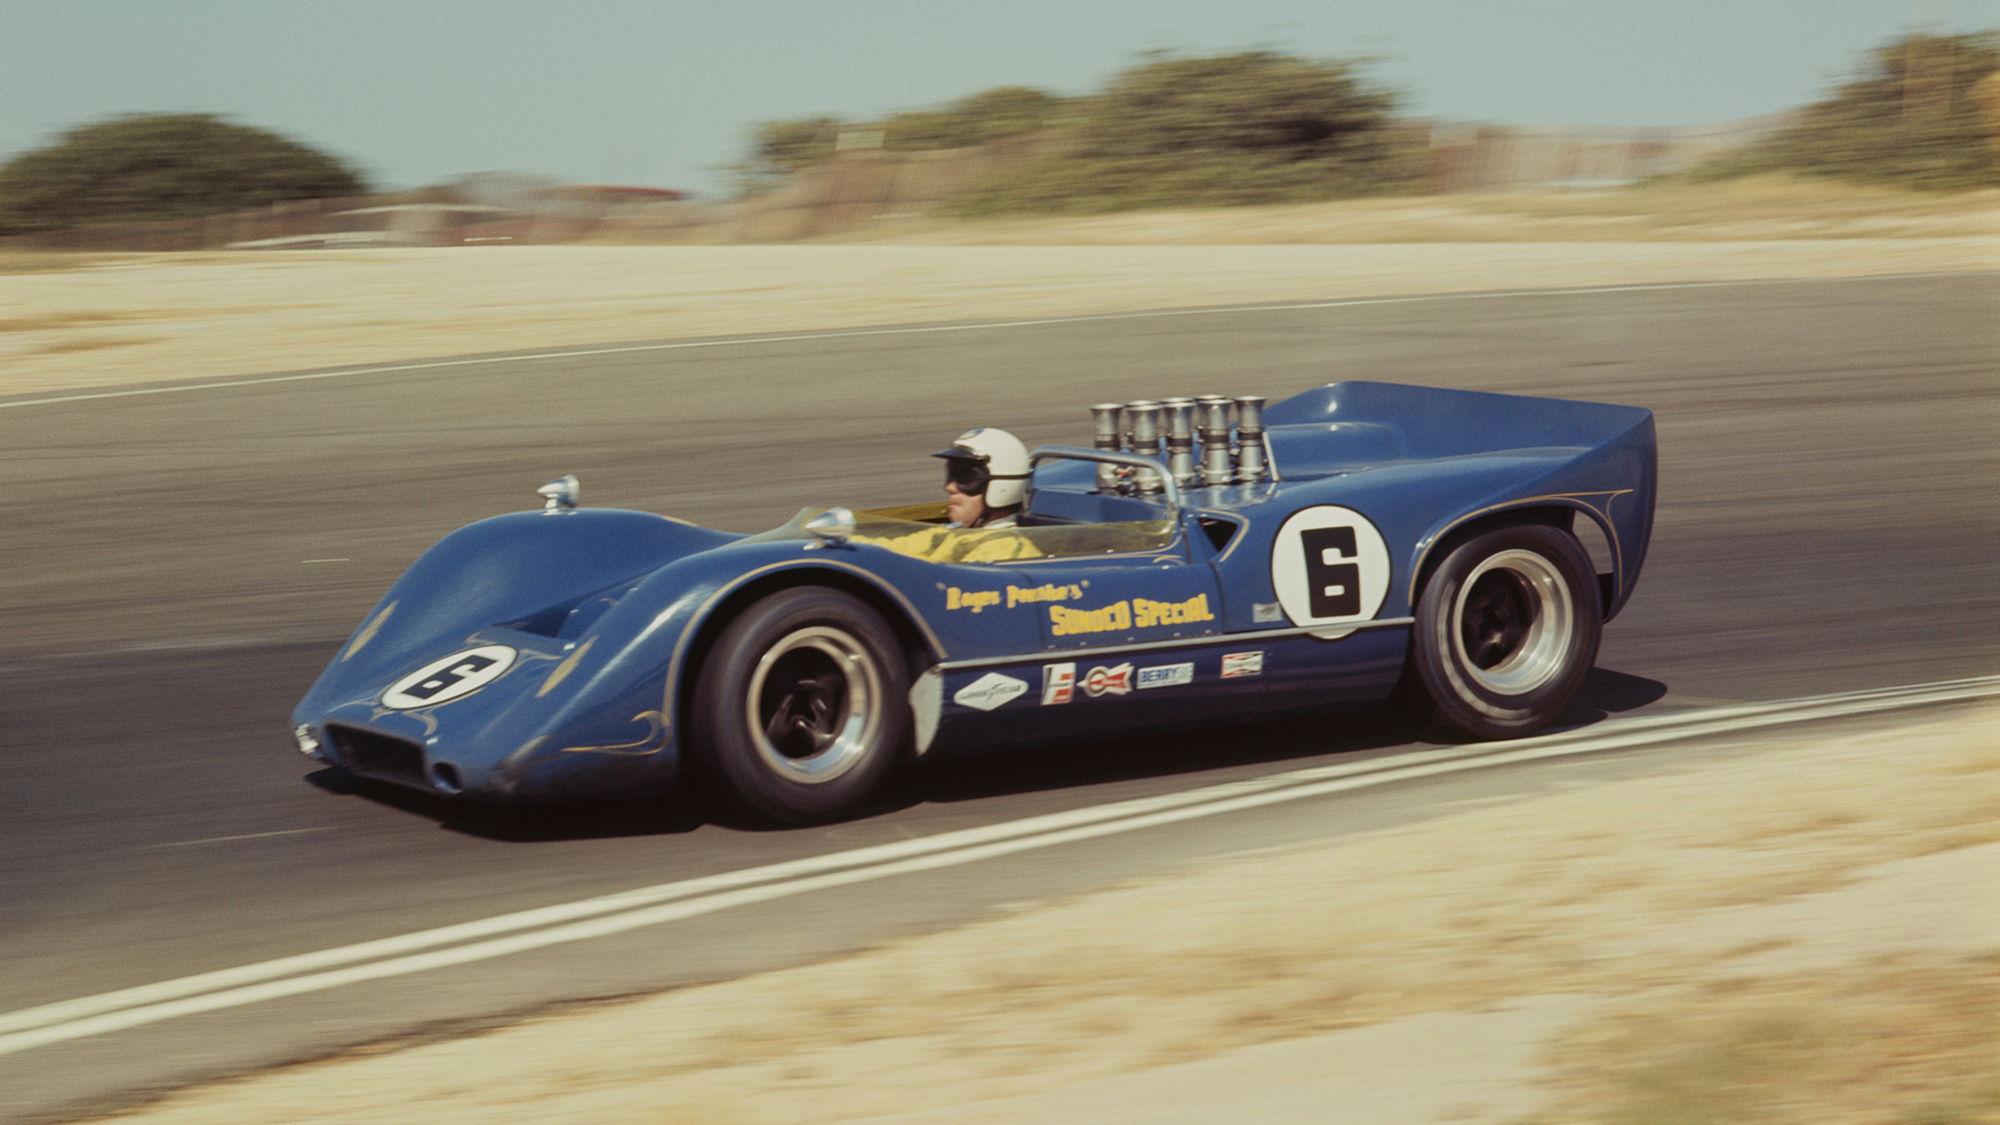 Mark Donohue driving his McLaren M6A to victory at Laguna Seca in the 1968 US Road Racing Championships